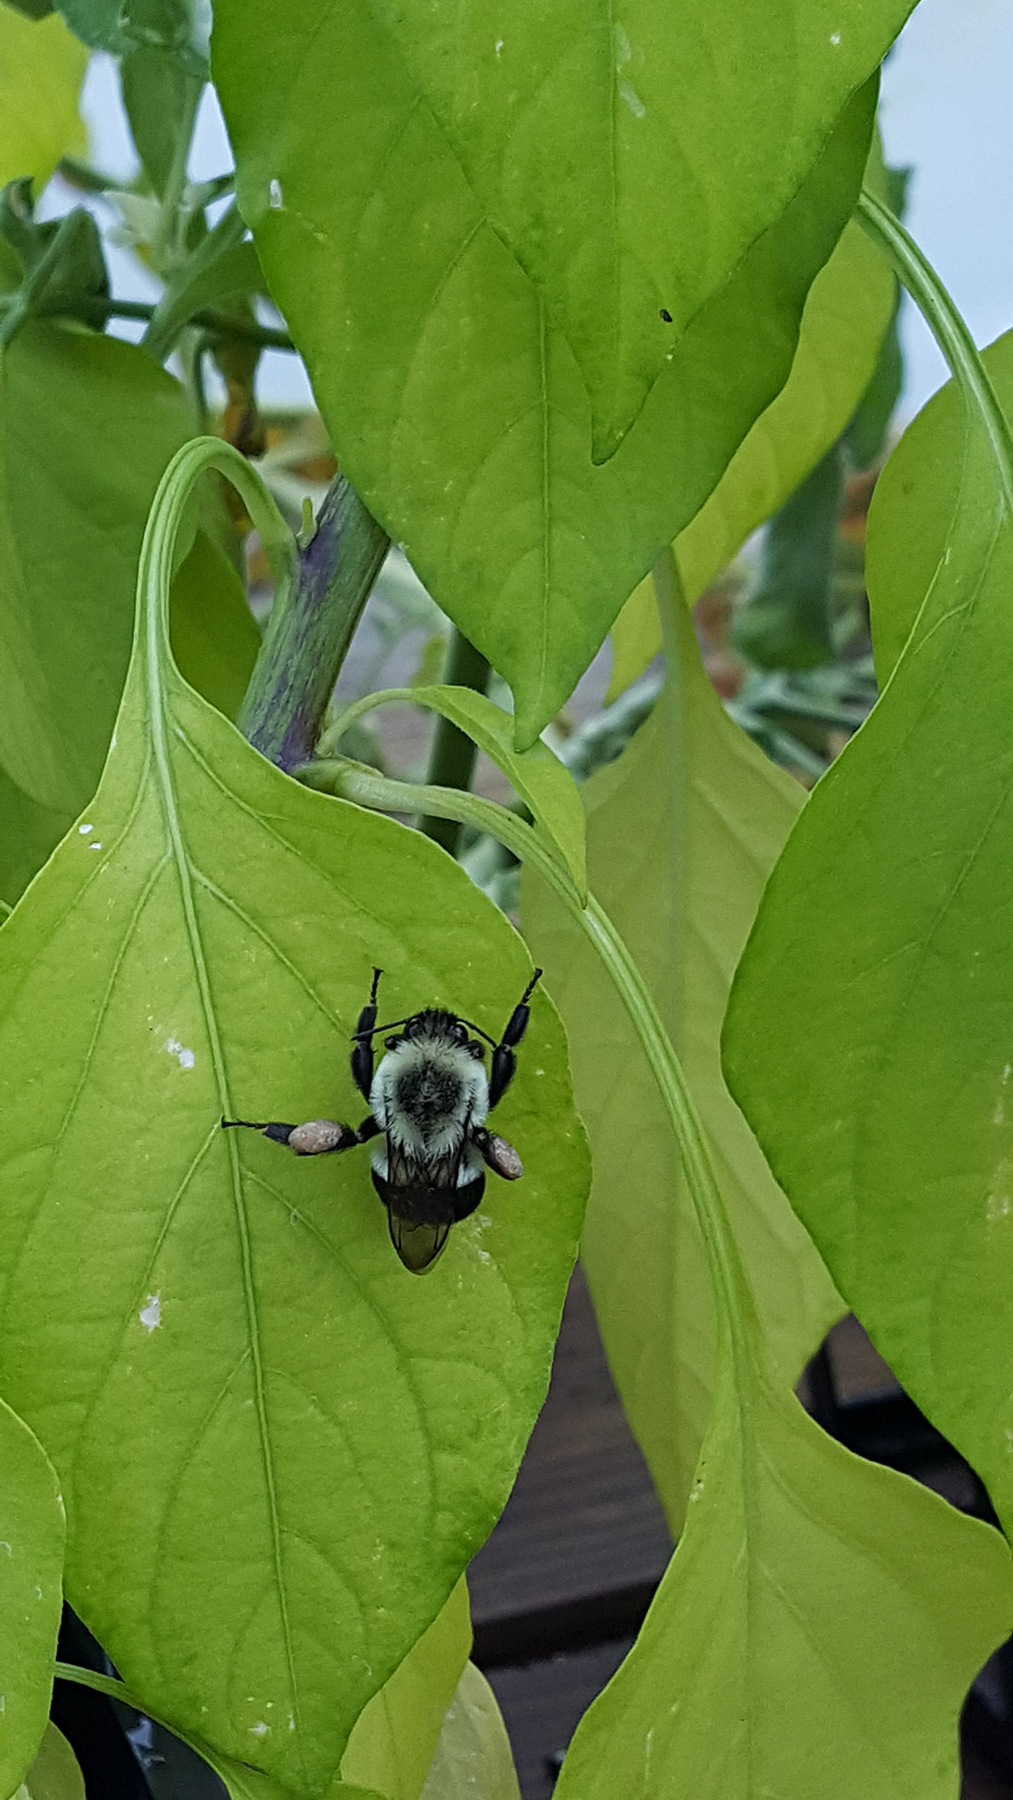 A bee on a leaf.